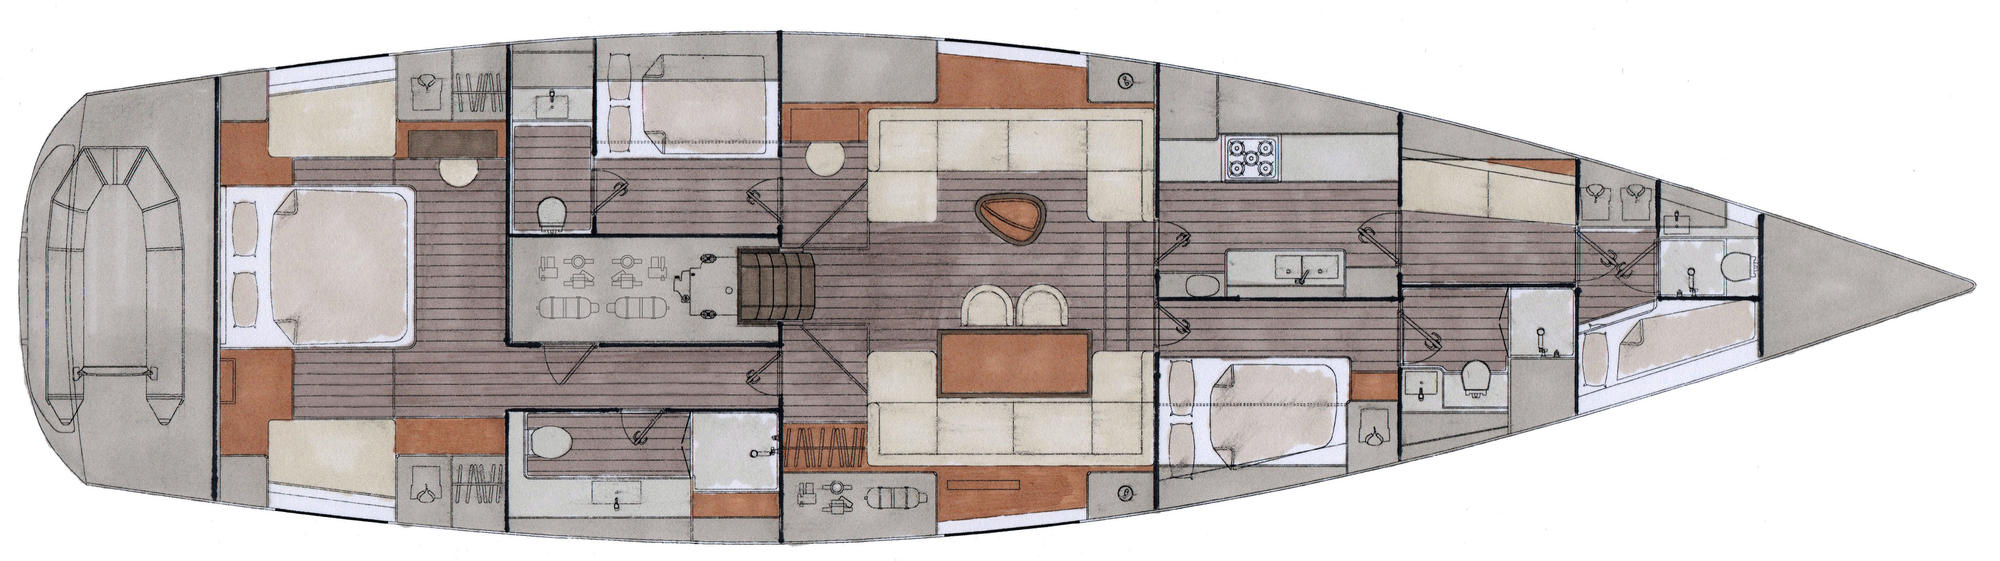 Conyplex Contest 72 CS - contest_72cs_interior_layout_72102.jpg